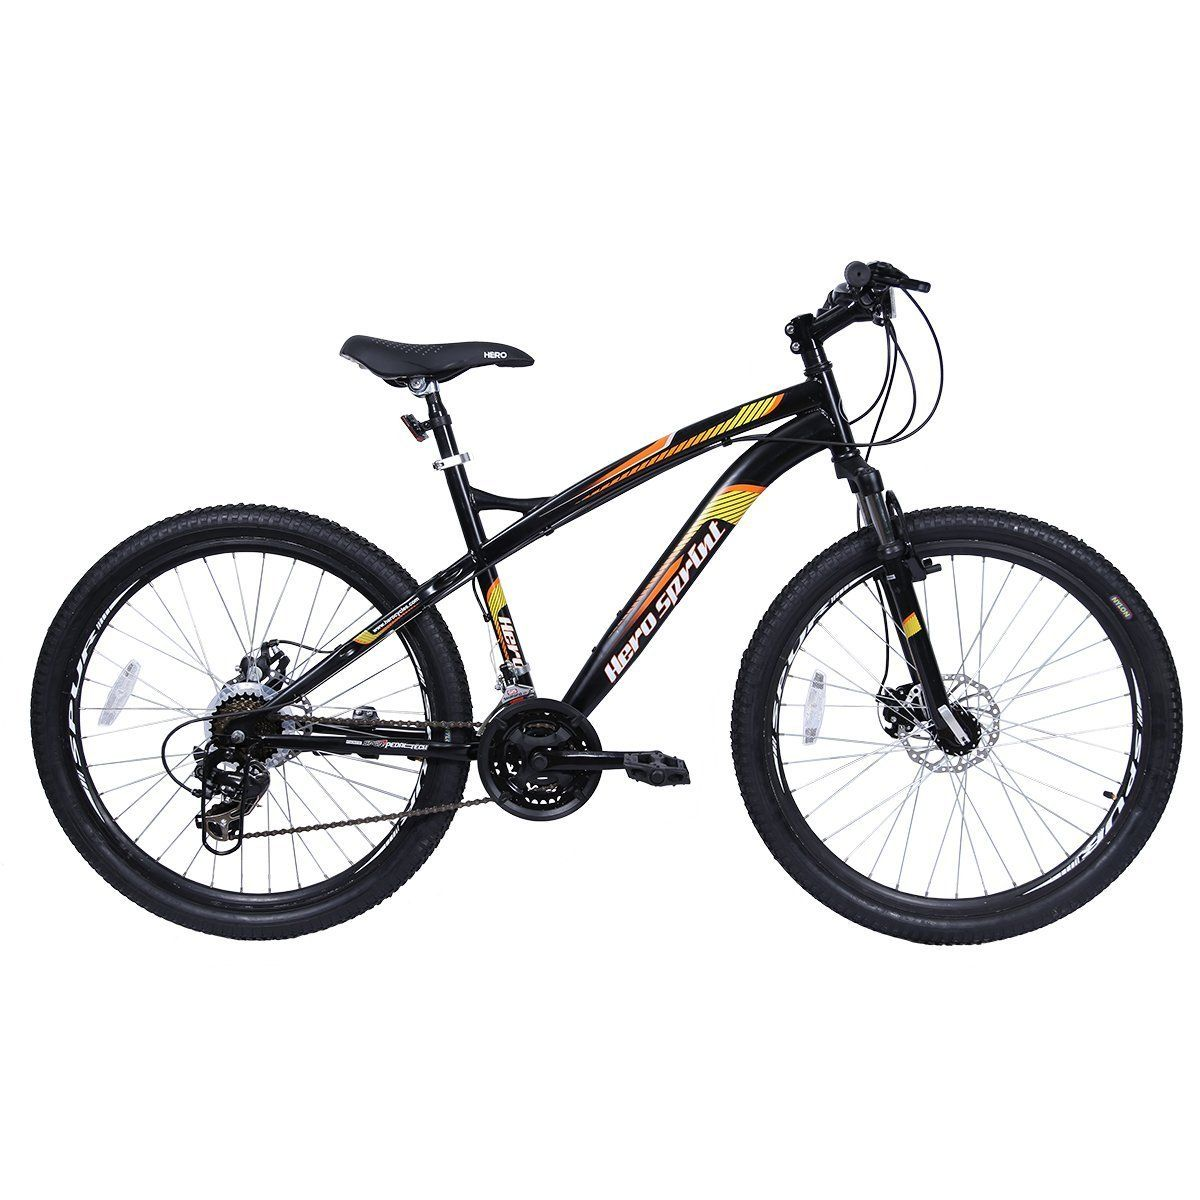 782ddedd59a hero cycles with gear and disc brake price